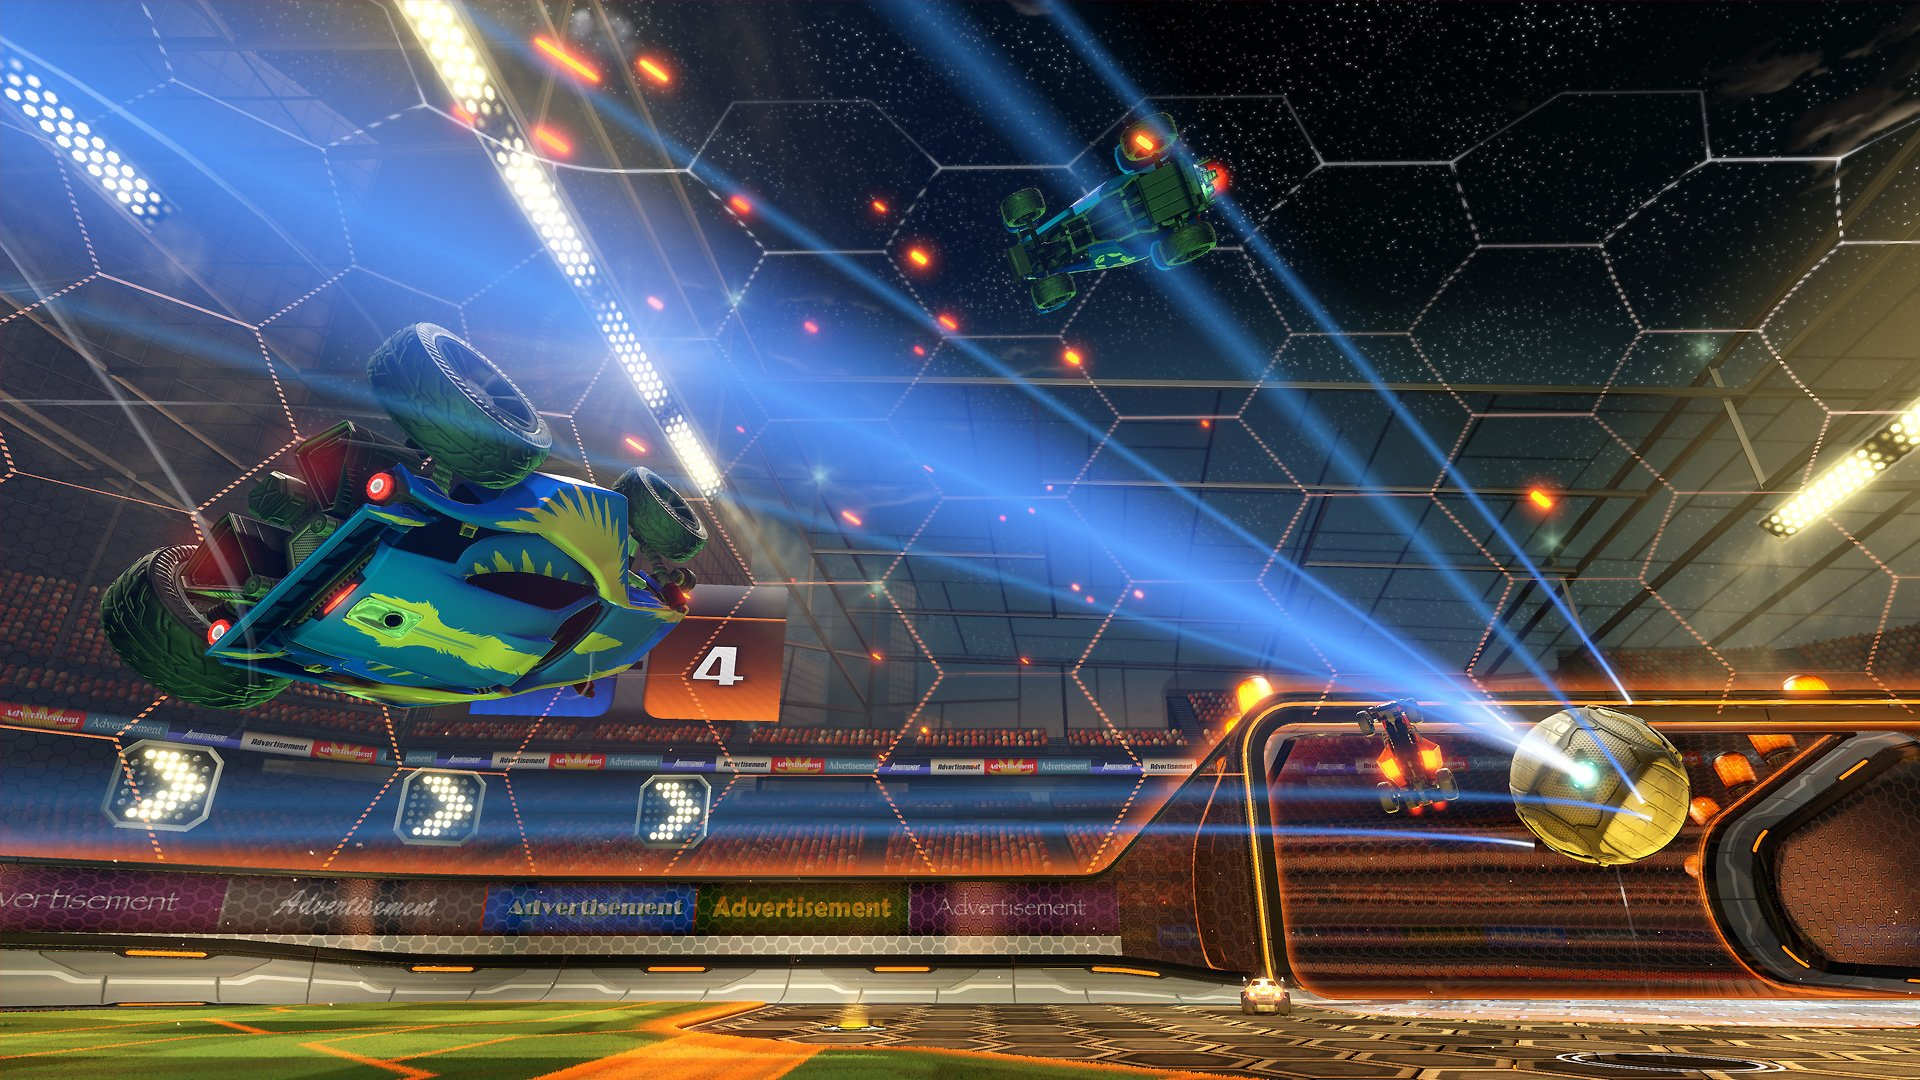 Rocket League Ps4 Playstation 4 Game Profile News